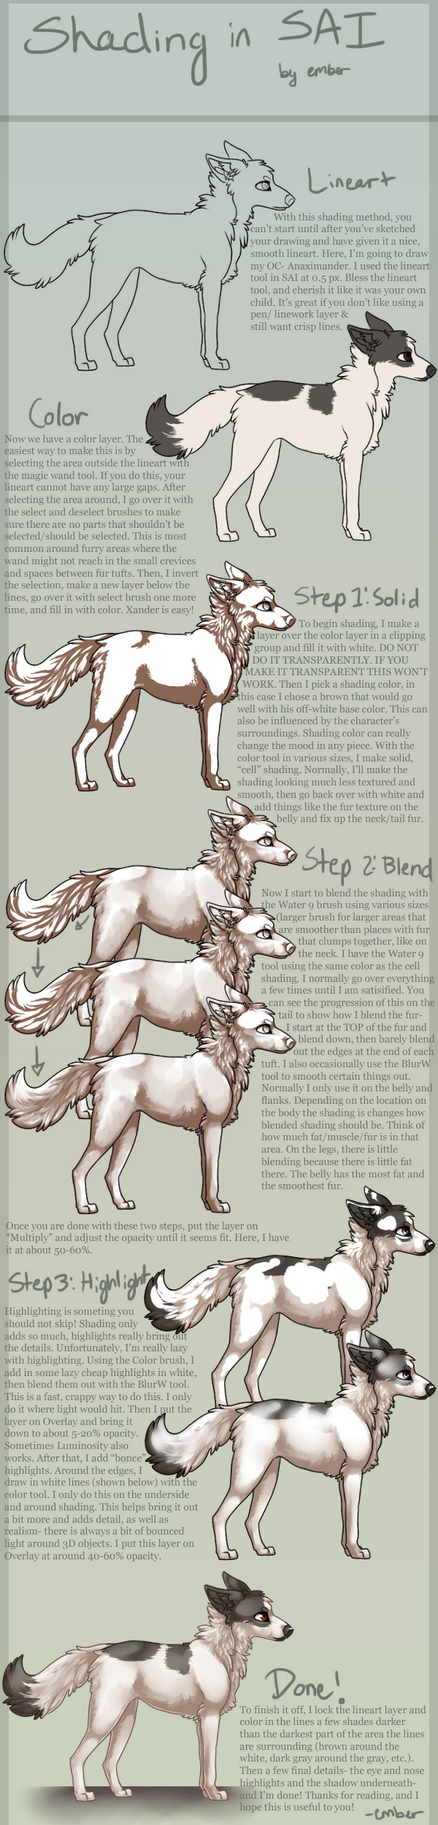 SAI [fur] Shading Tutorial by pipamir